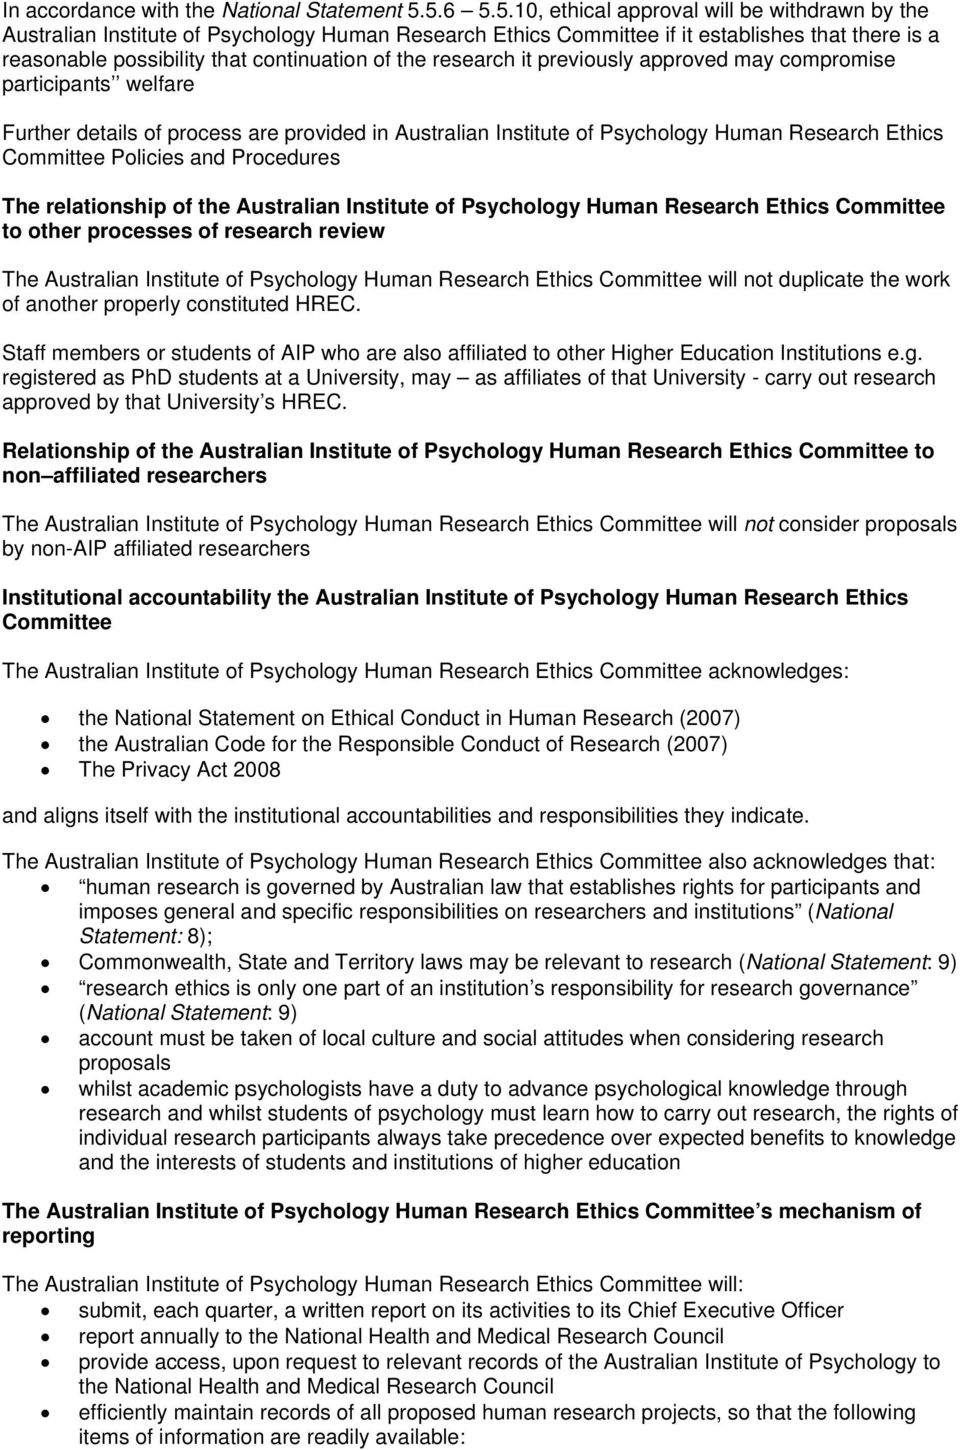 research it previusly apprved may cmprmise participants welfare Further details f prcess are prvided in Australian Institute f Psychlgy Human Research Ethics Cmmittee Plicies and Prcedures The